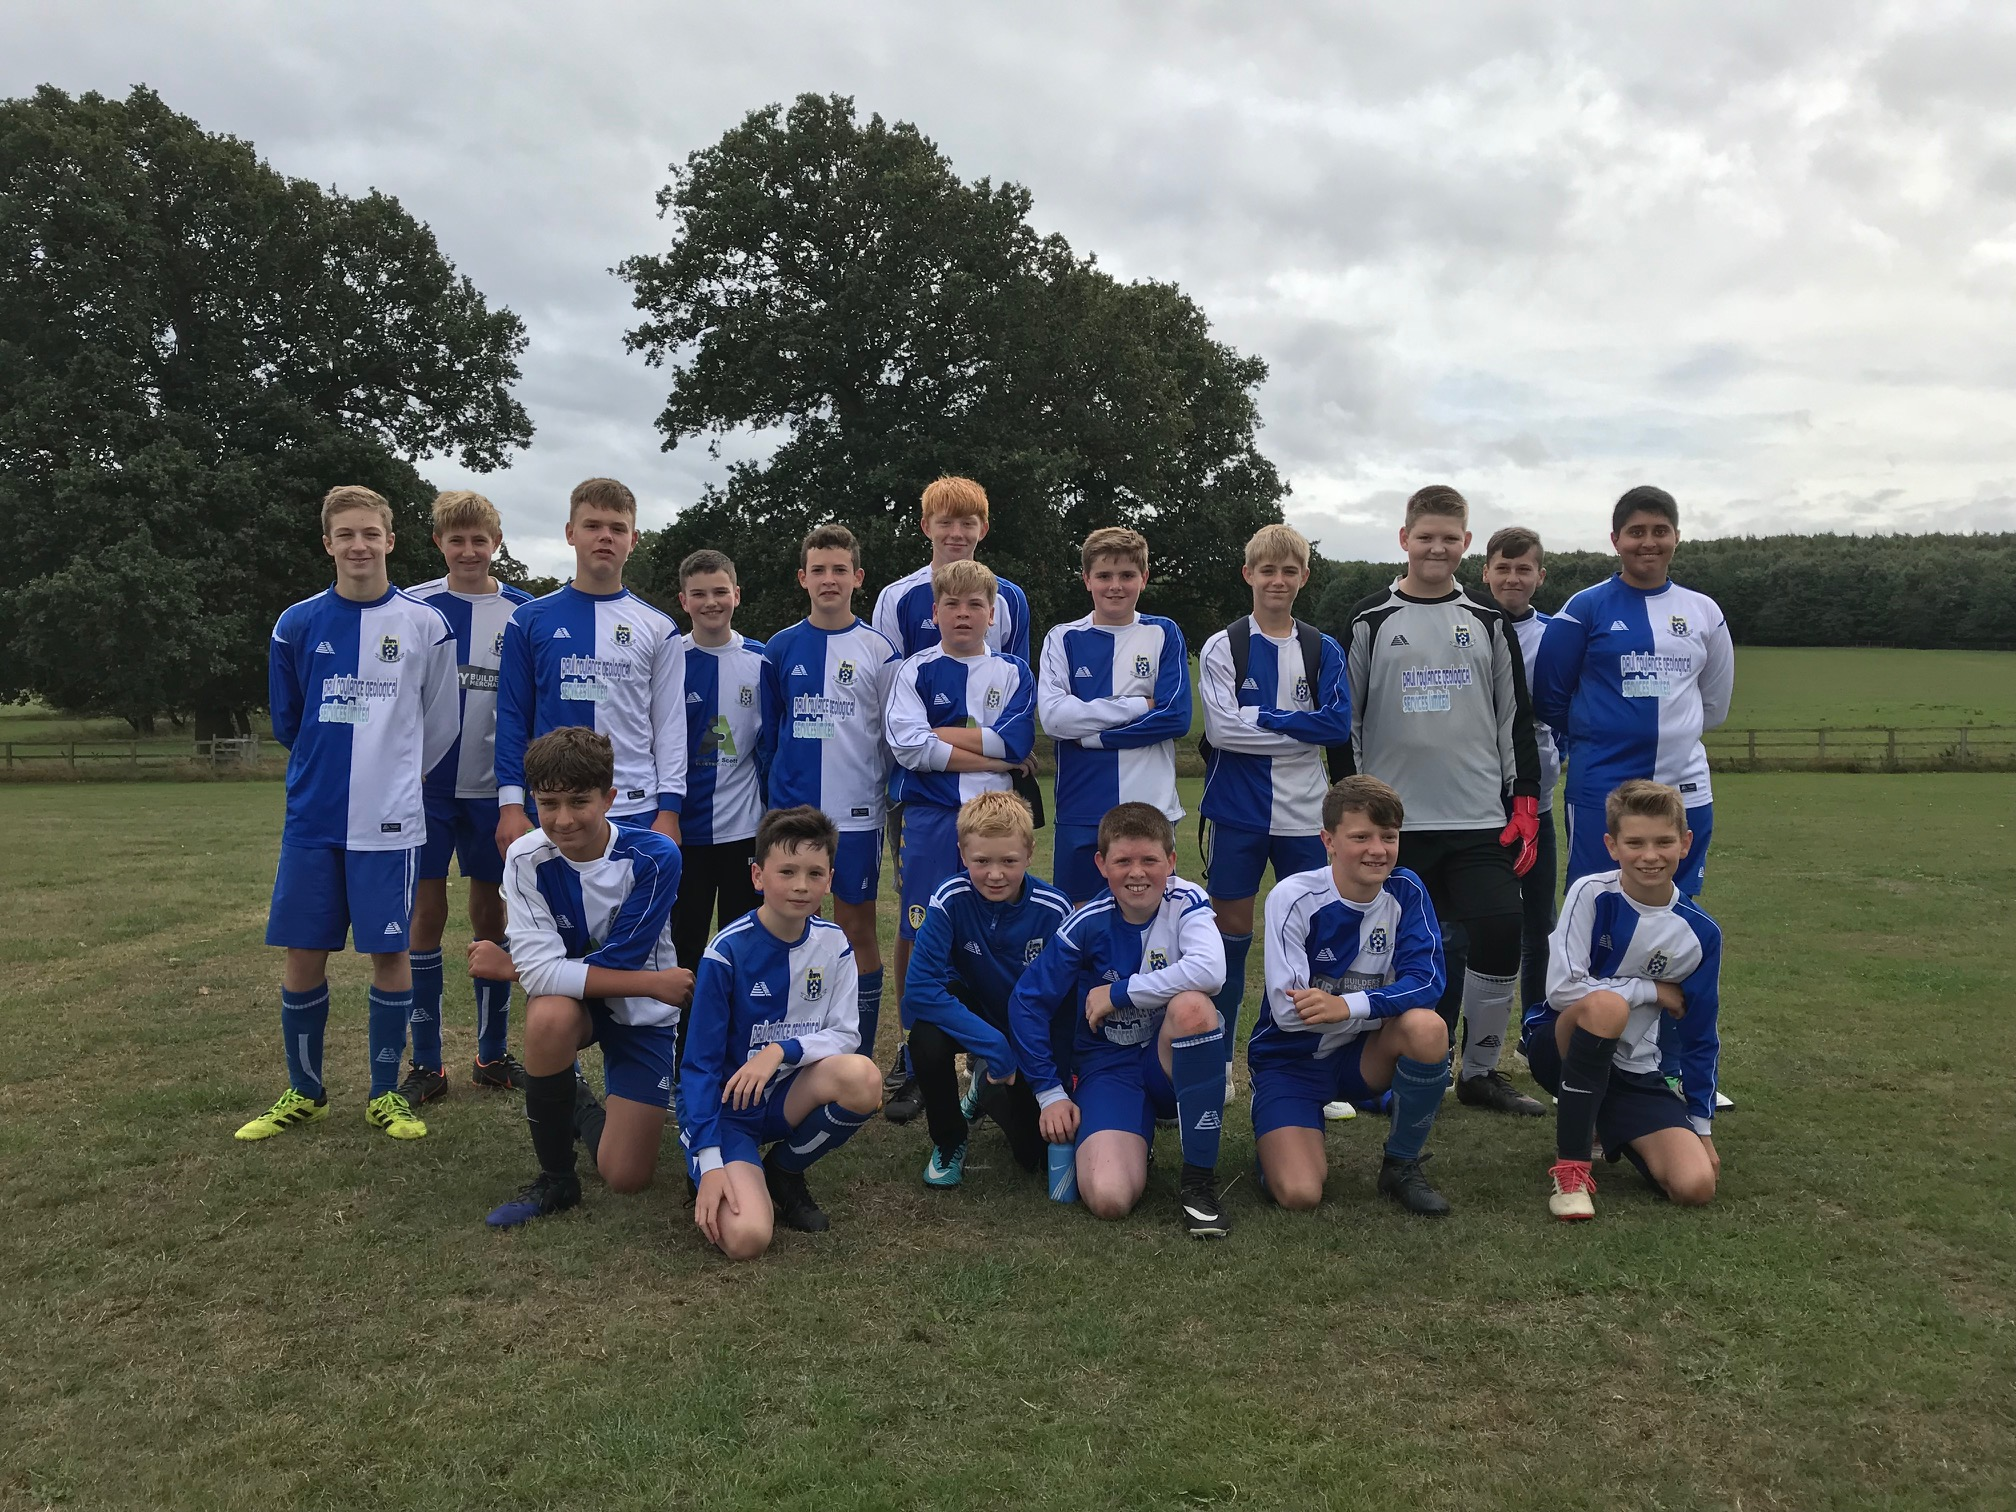 The U14s team that beat Pannal Ash 9-3 on September 9th 2018